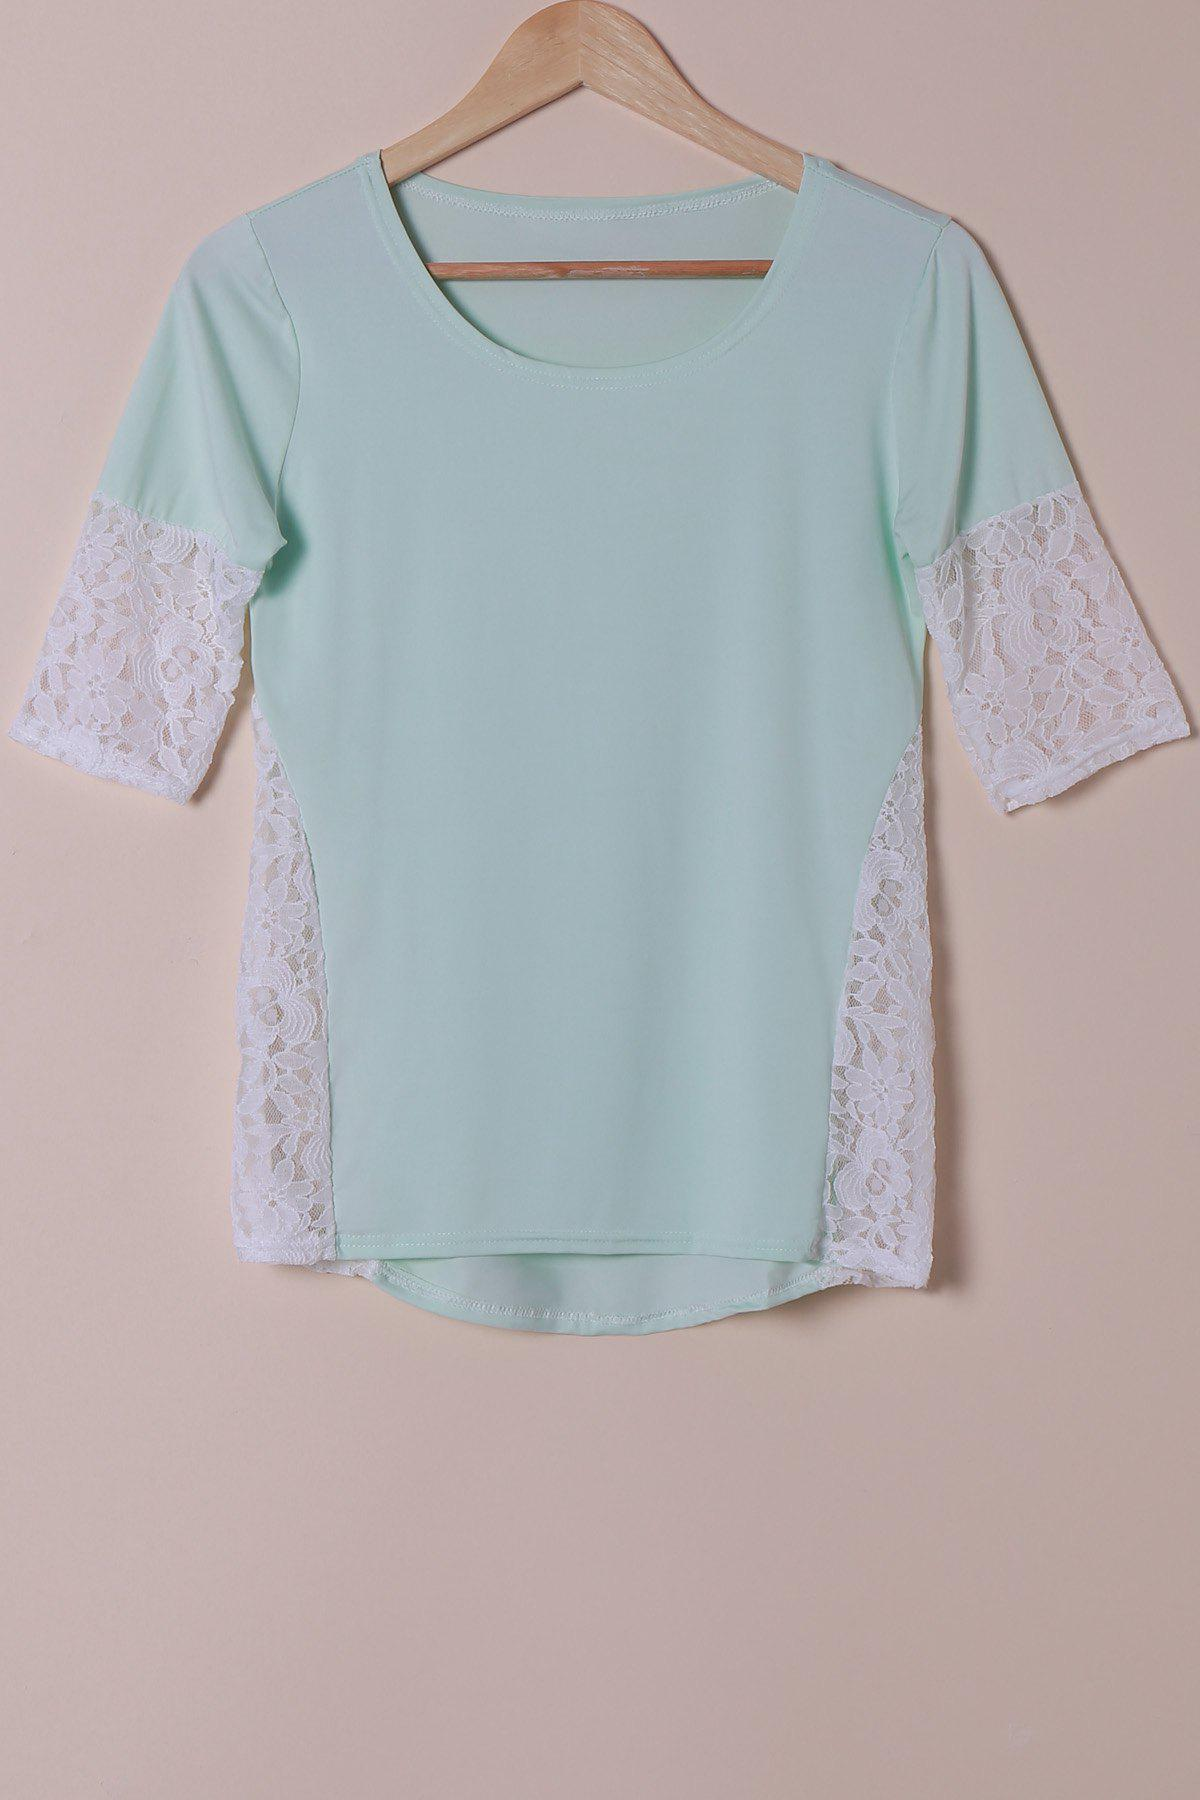 Shops Stylish Scoop Neck Lace Spliced Half Sleeve T-Shirt For Women